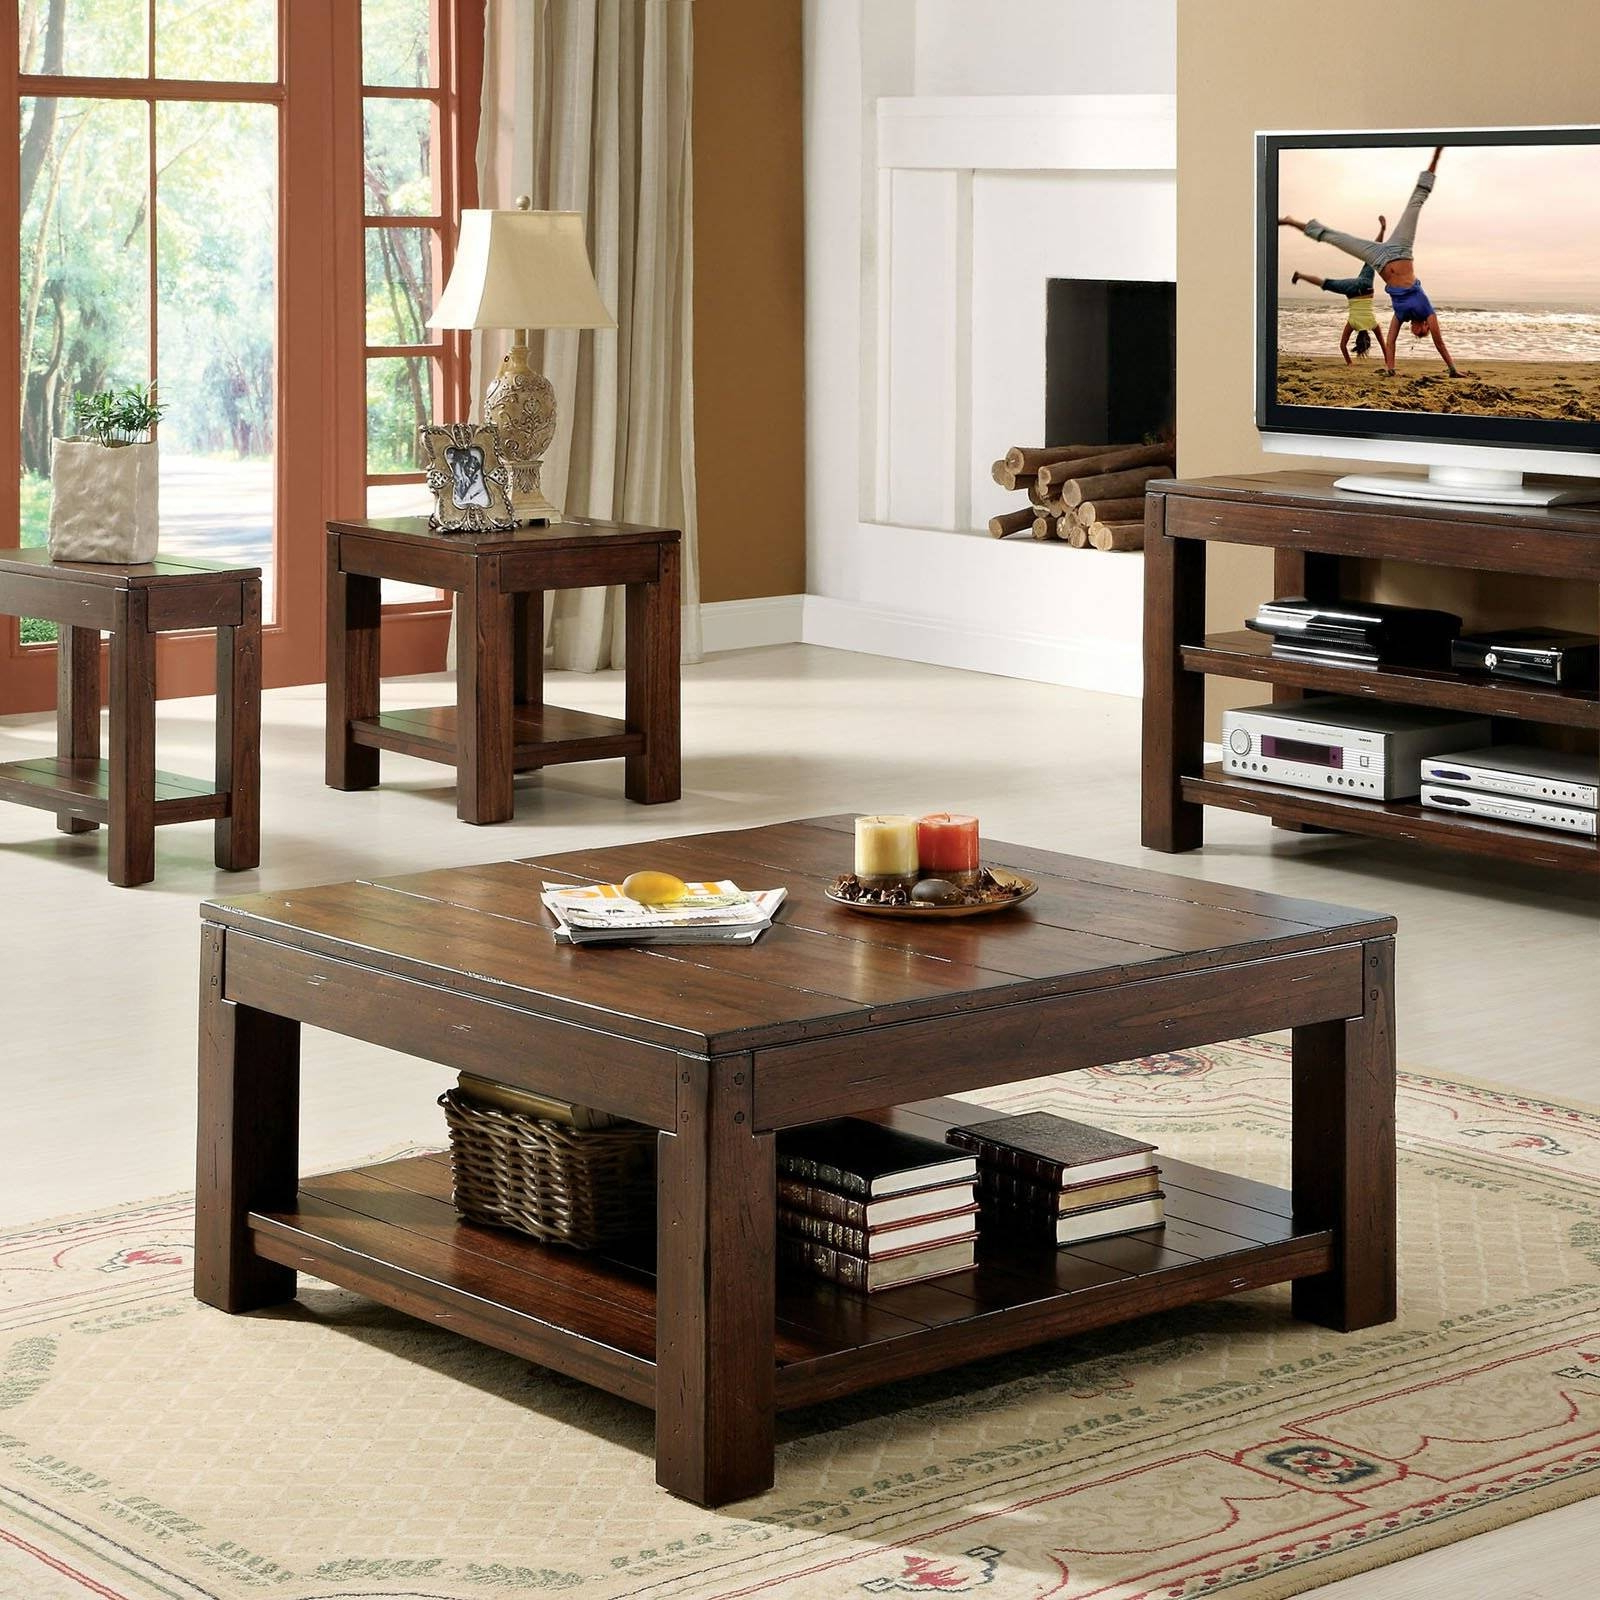 Tables Decoration Intended Throughout Most Recently Released Rustic Coffee Table And Tv Stand (View 16 of 20)